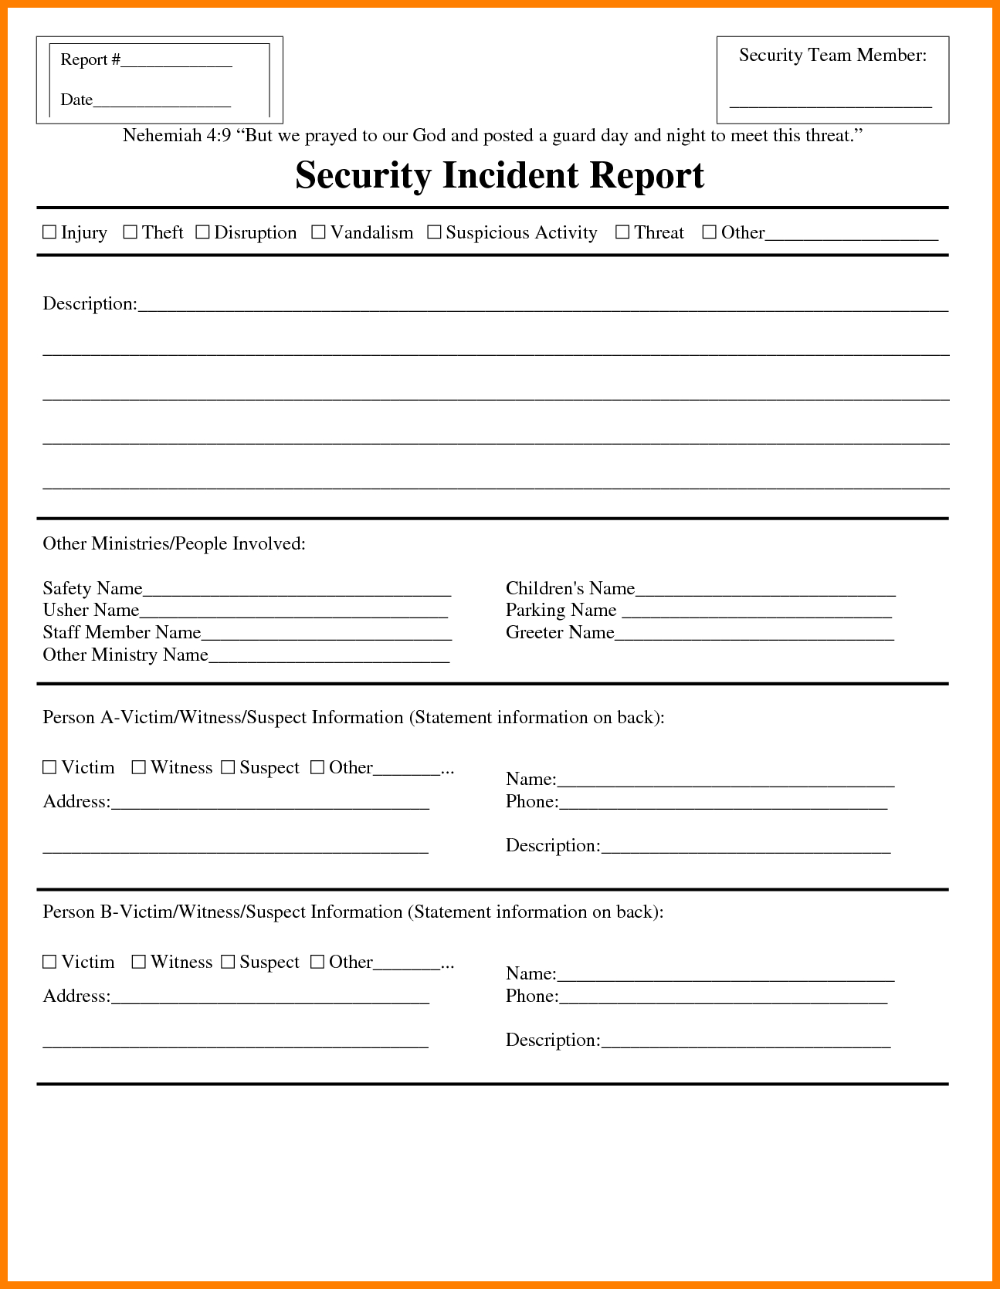 Template Ideas Security Incident Reports Uncategorized Premium For Incident Report Form Template Word Incident Report Form Report Template Information Report